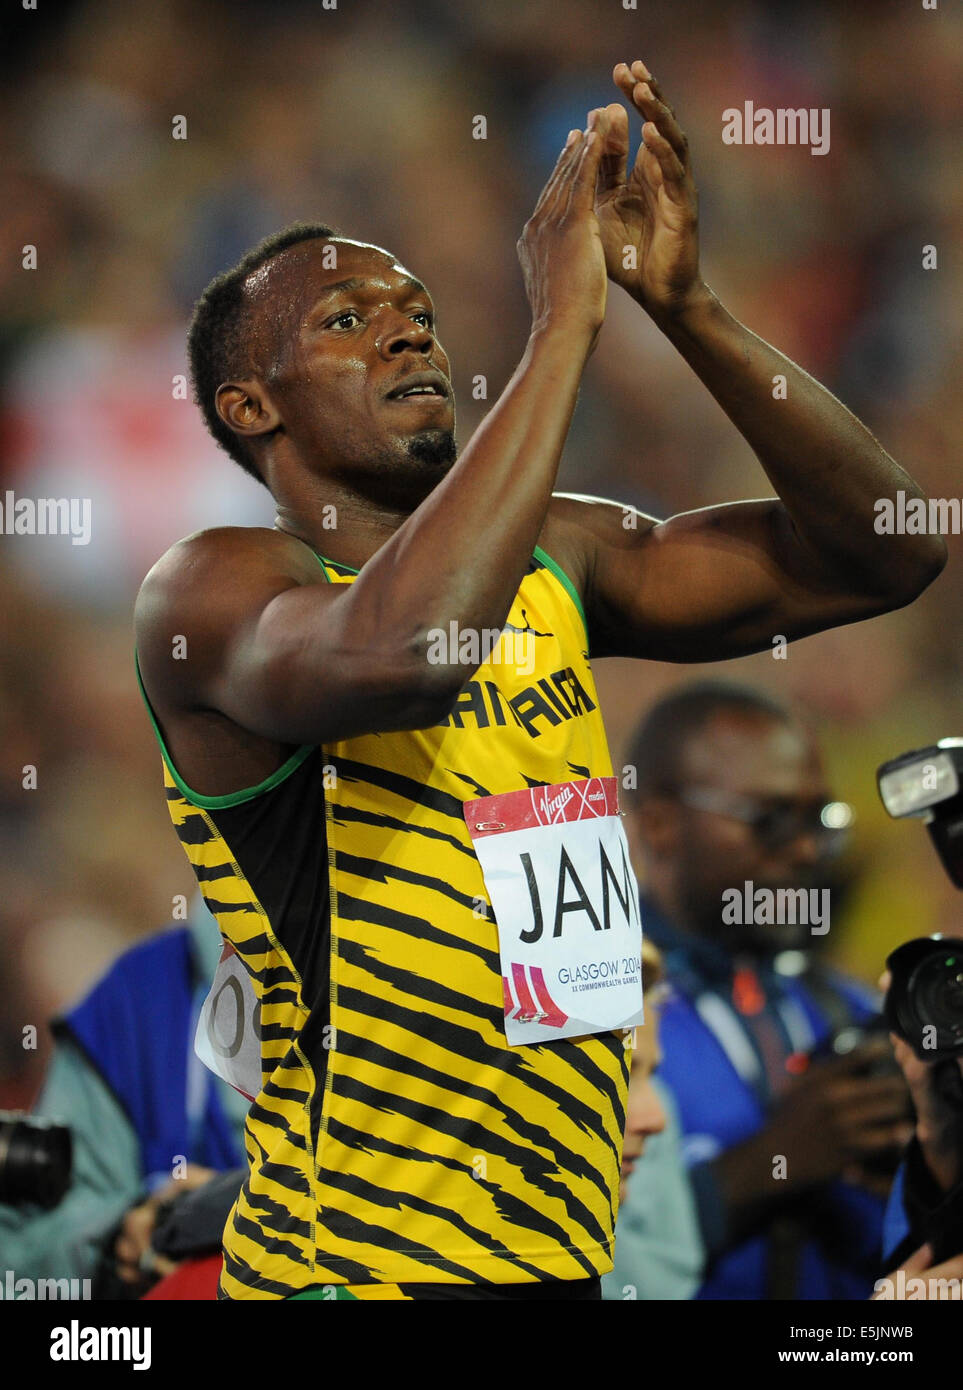 USAIN BOLT MEN'S 4X100 RELAY HAMPDEN PARK GLASGOW SCOTLAND 02 August 2014 - Stock Image